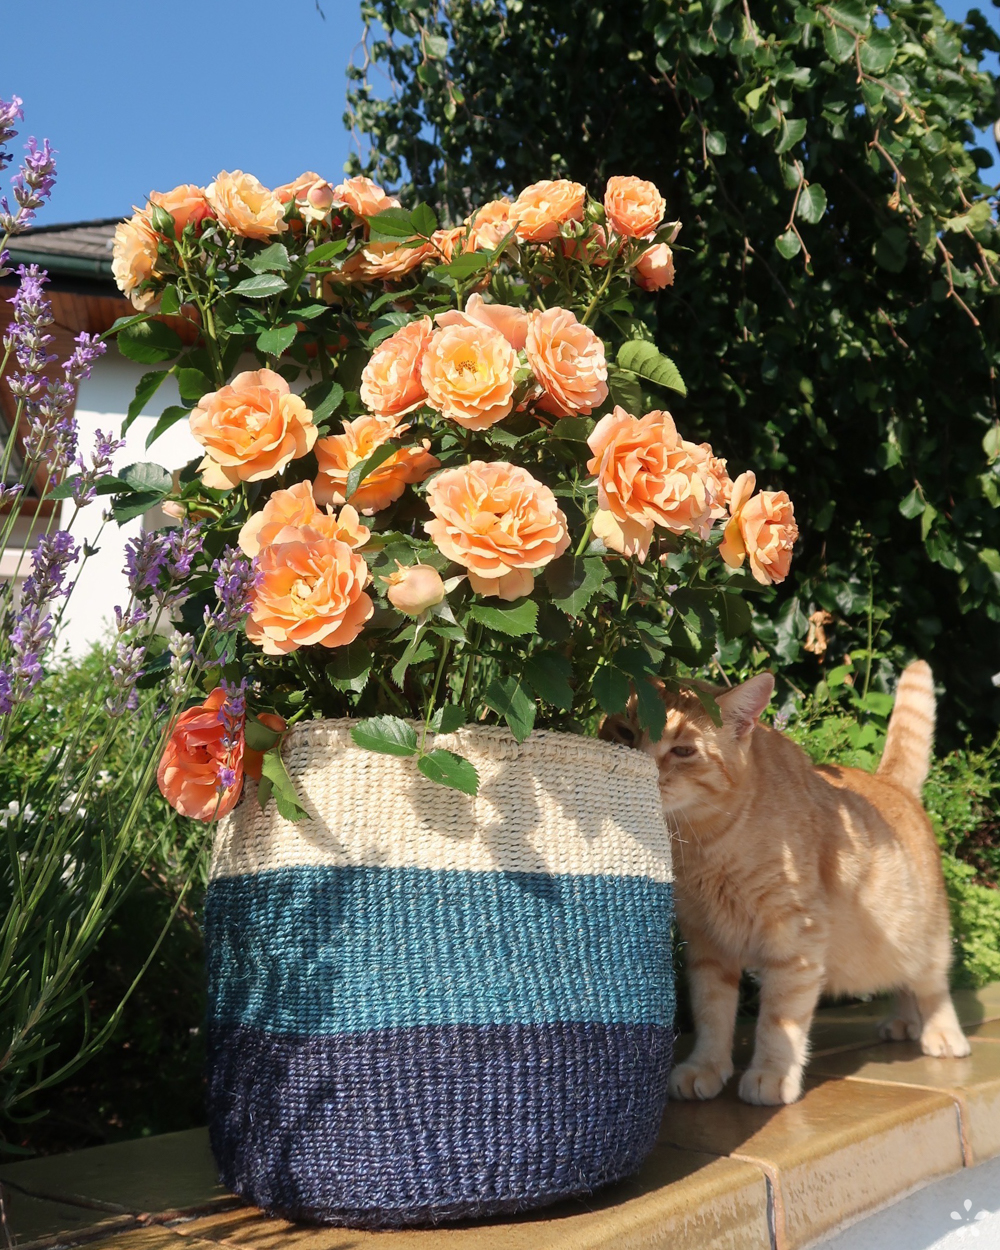 Handmade Sisal Basket White Blue Blocks Orange Rose Cat Smelling